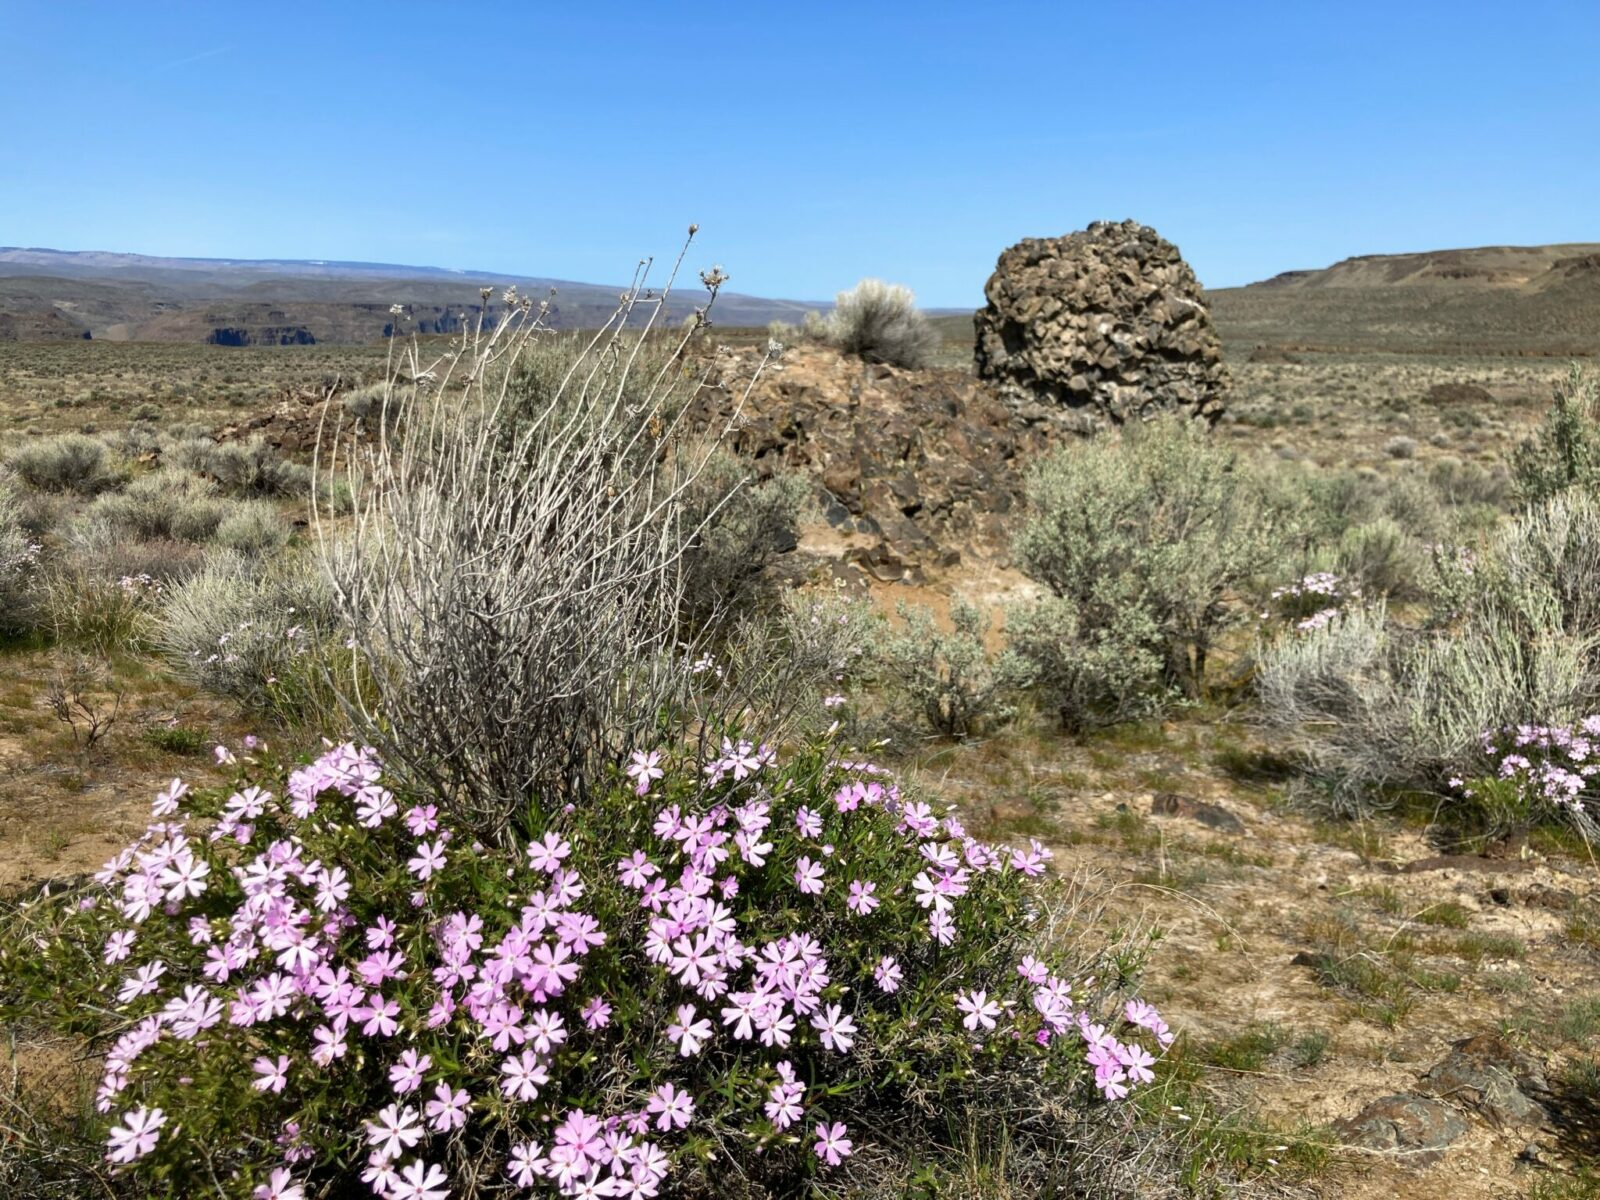 purple wildflowers are in the foreground and a large boulder and distant hills are in the background. There is sagebrush in between the rocks and flowers